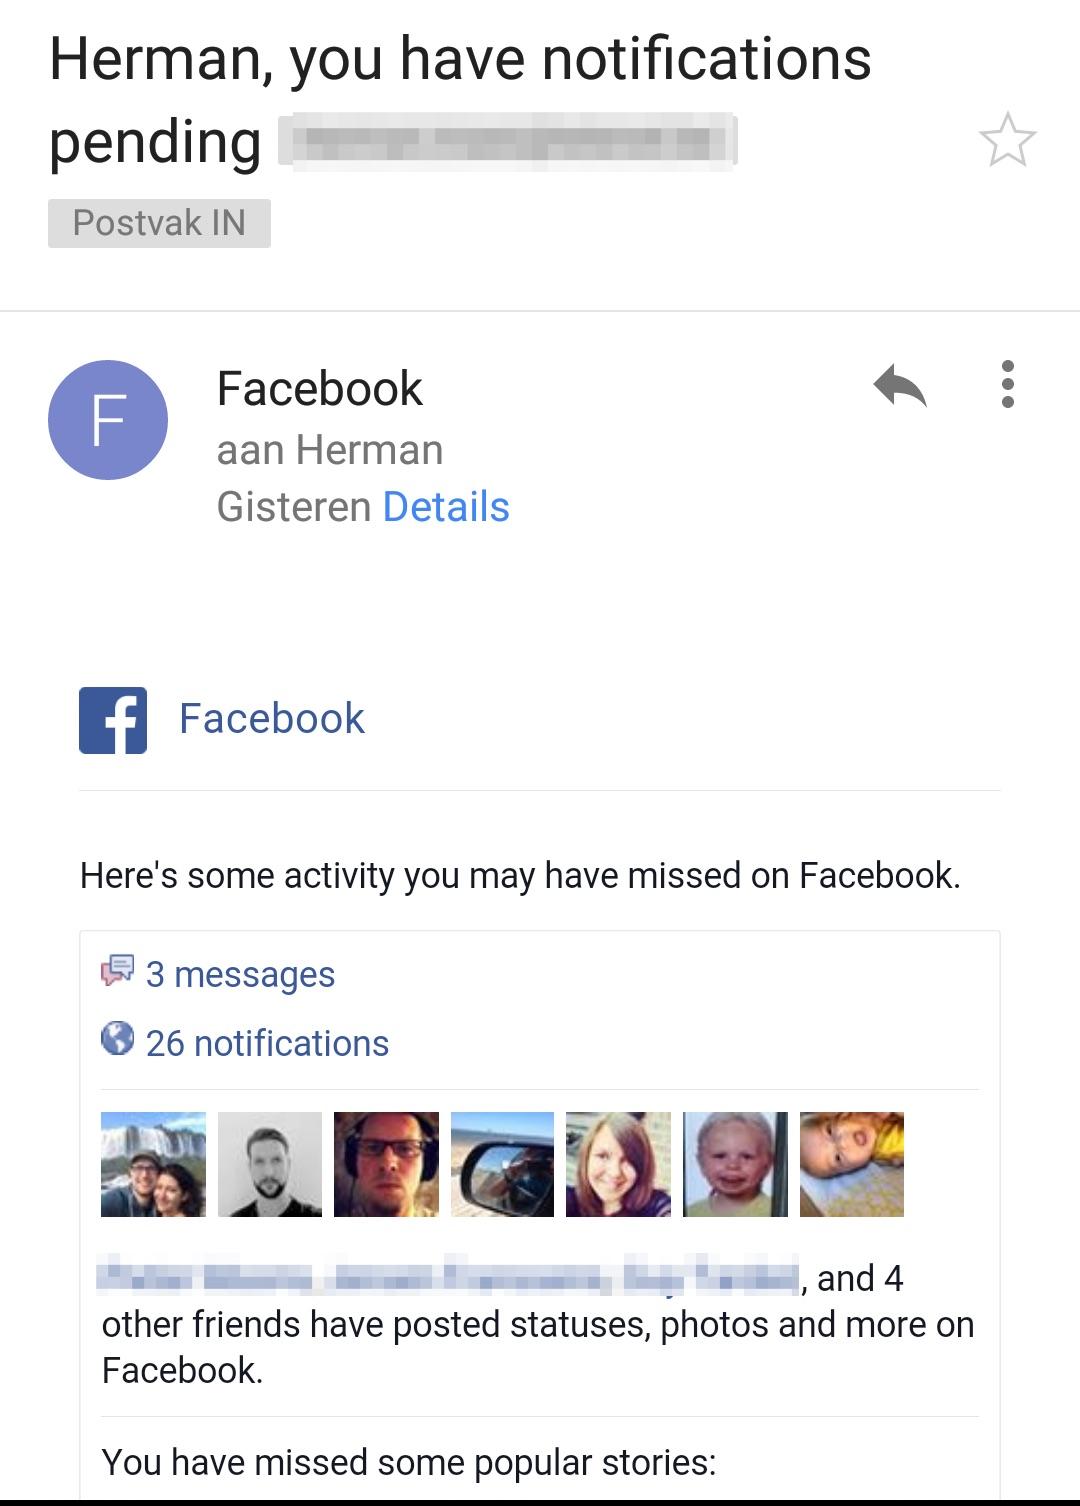 FB notificaties